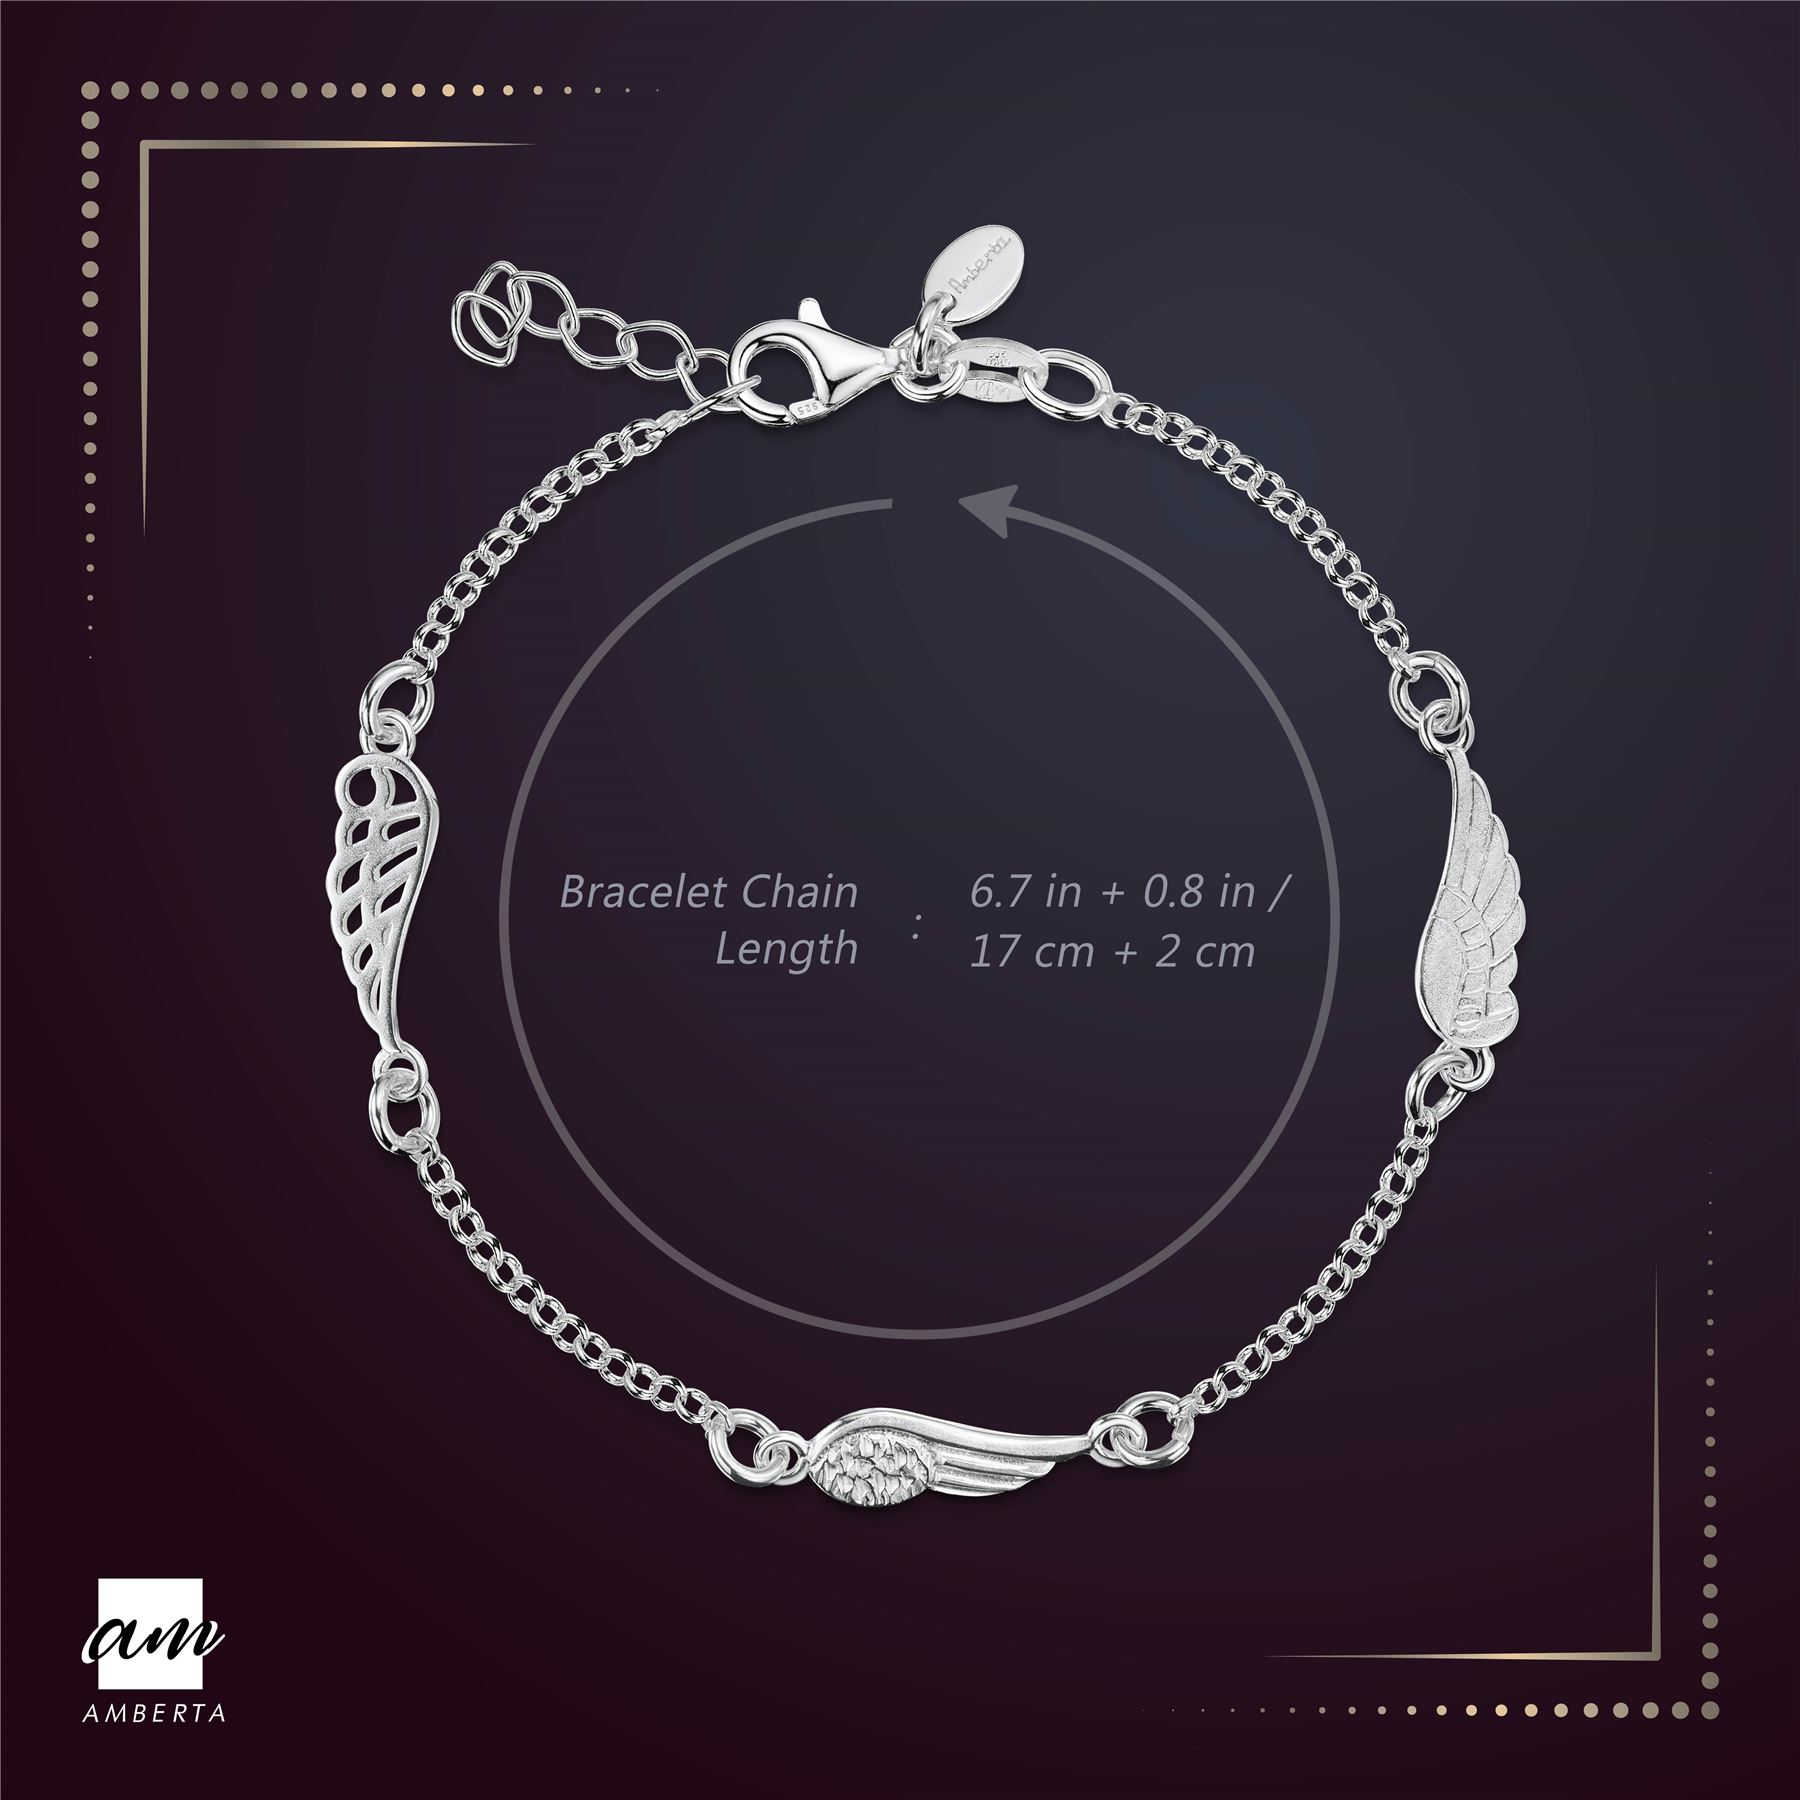 Amberta-925-Sterling-Silver-Adjustable-Rolo-Chain-Bracelet-with-Charms-for-Women miniature 3